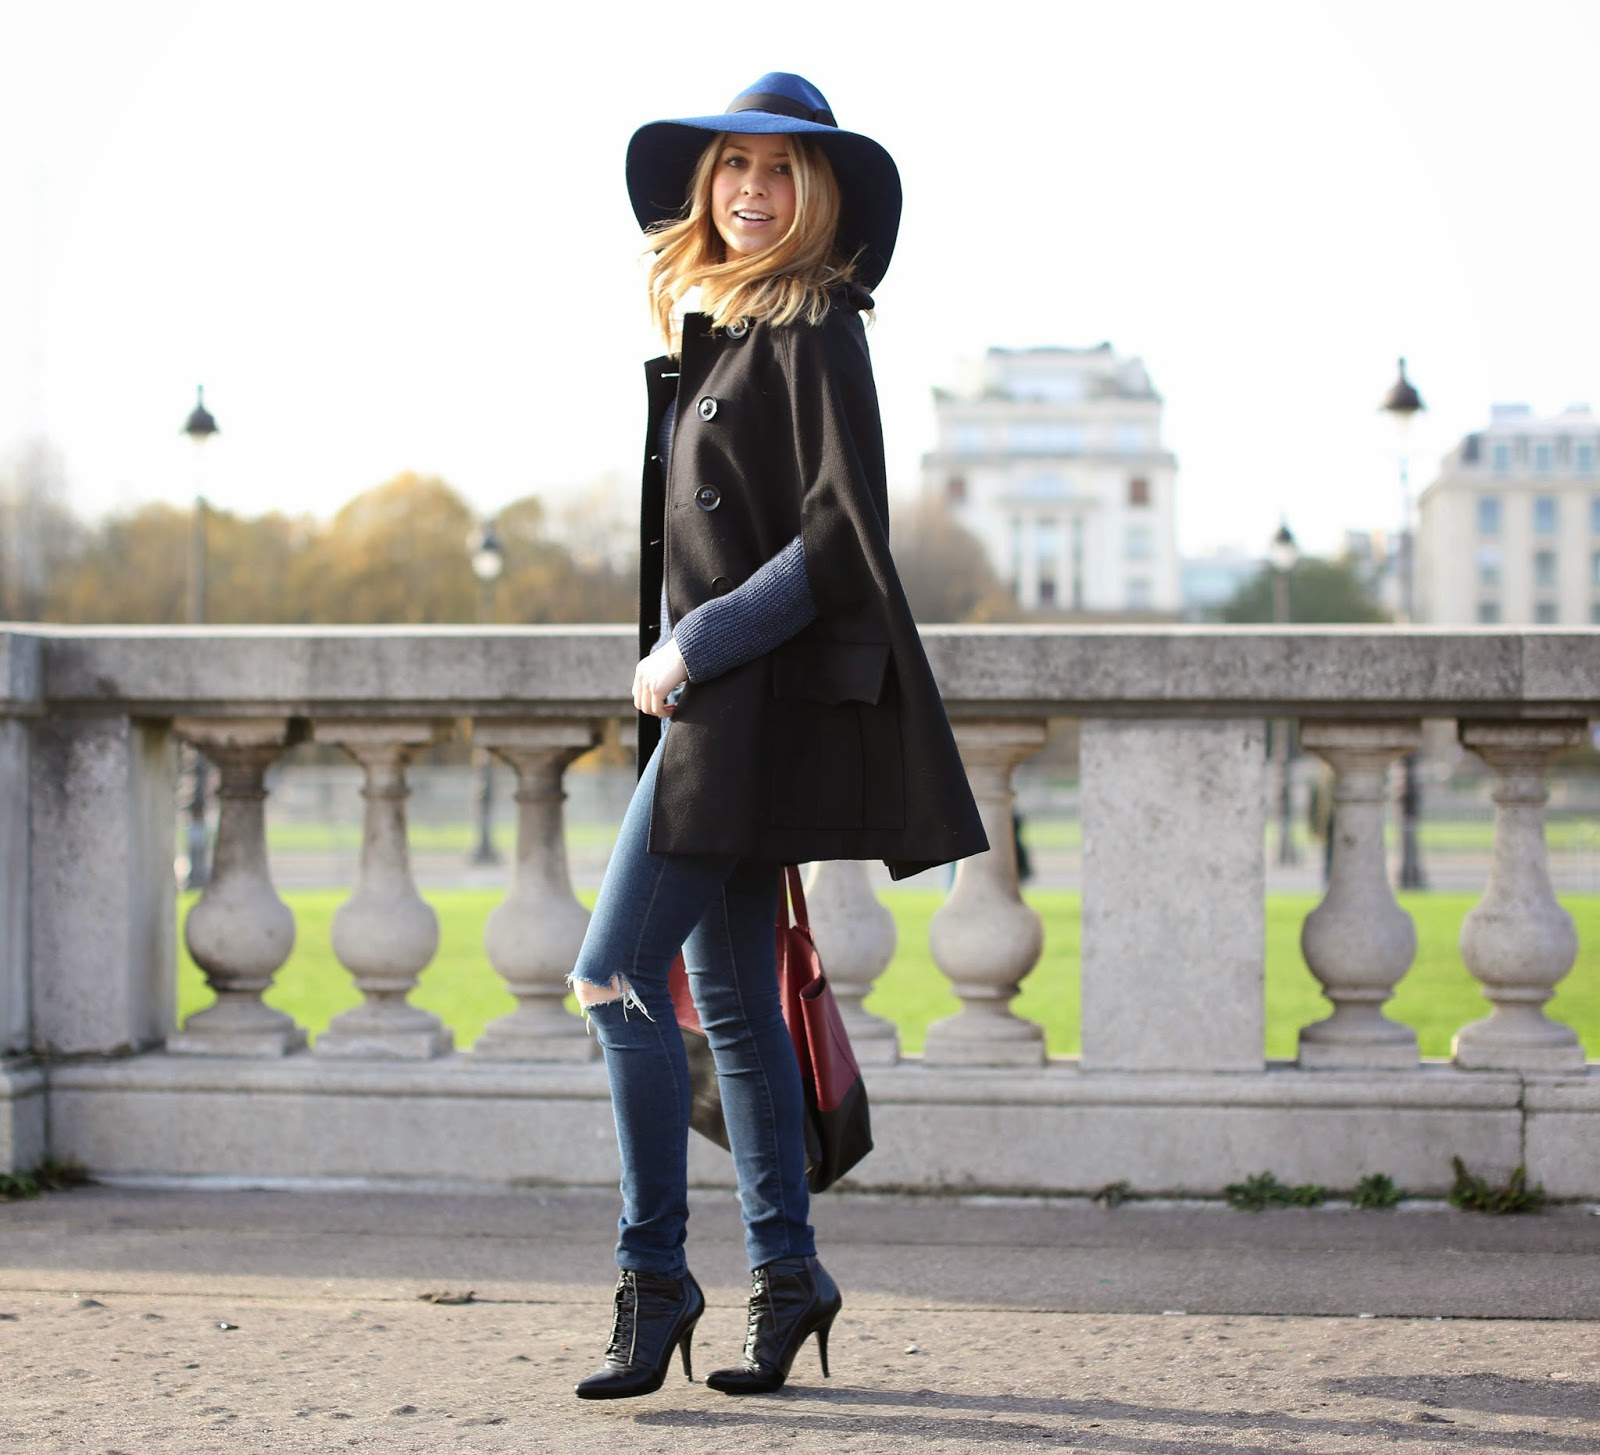 modern fairytale, Disney, burberry, cape, givenchy, paris, hat, céline, frame denim, street style, fashion blogger